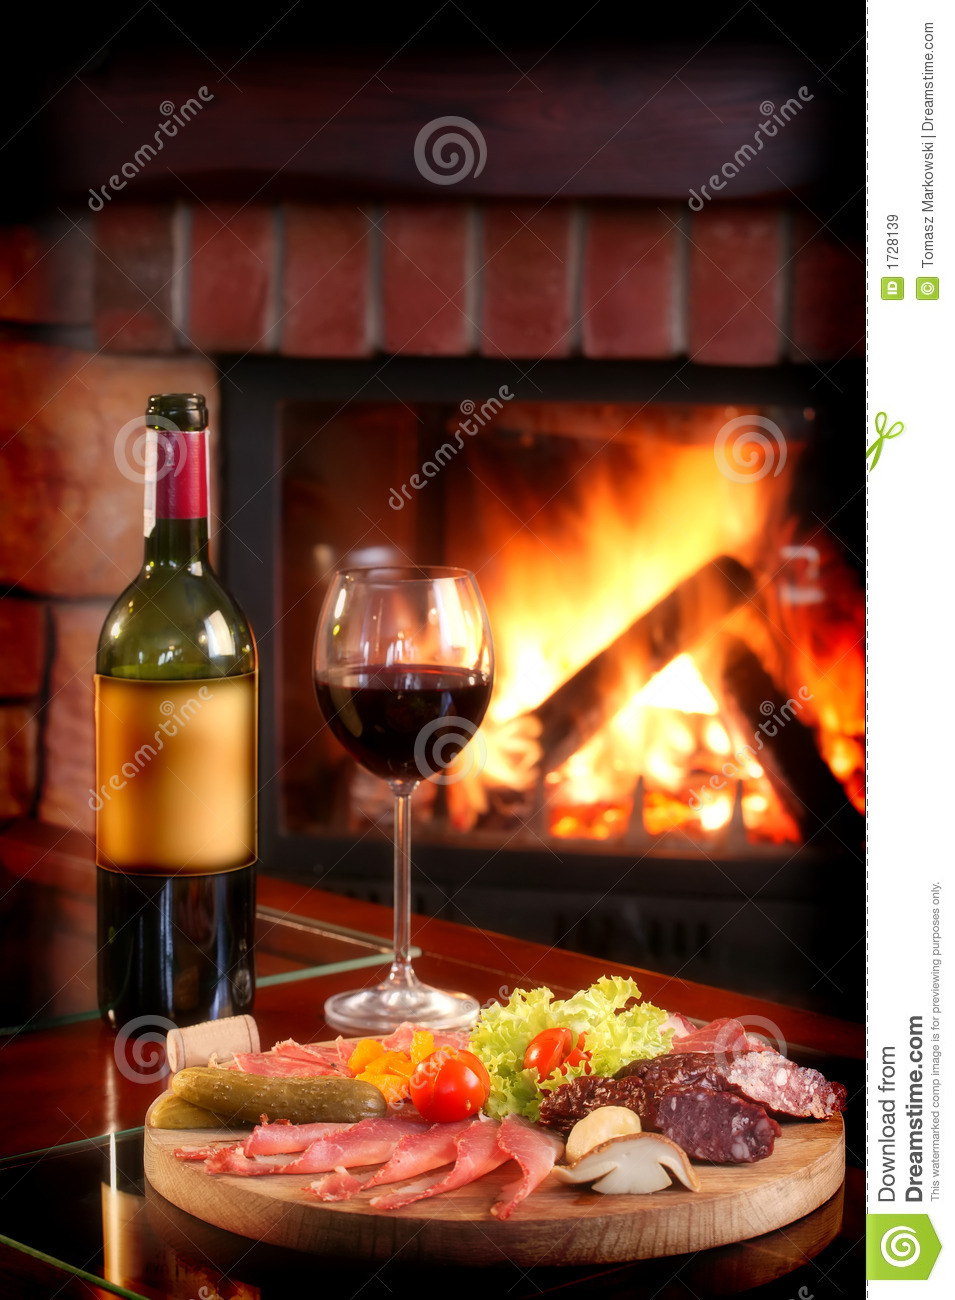 Fireplace And Red Wine Royalty Free Stock Images  Image